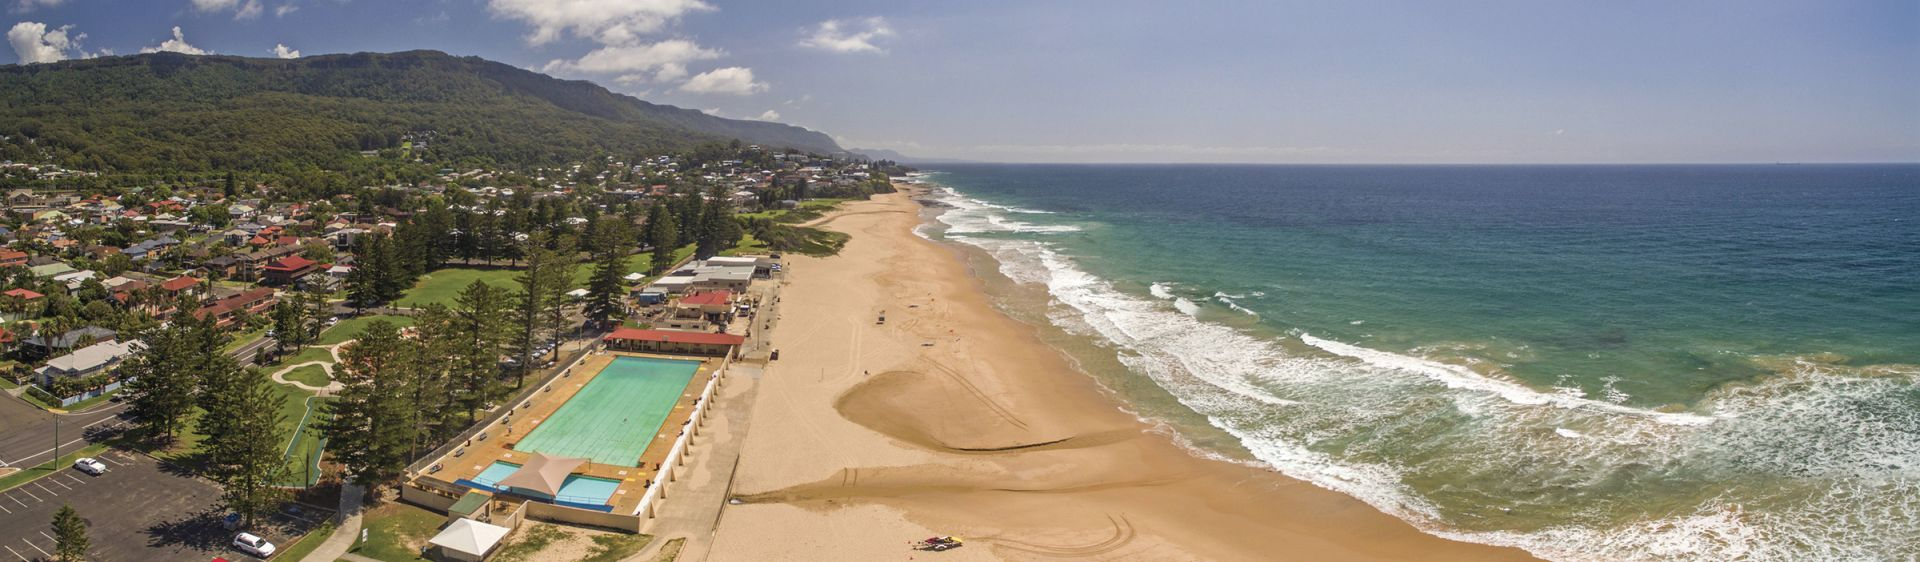 Sweeping aerial view of Thirroul Beach, north of Wollongong